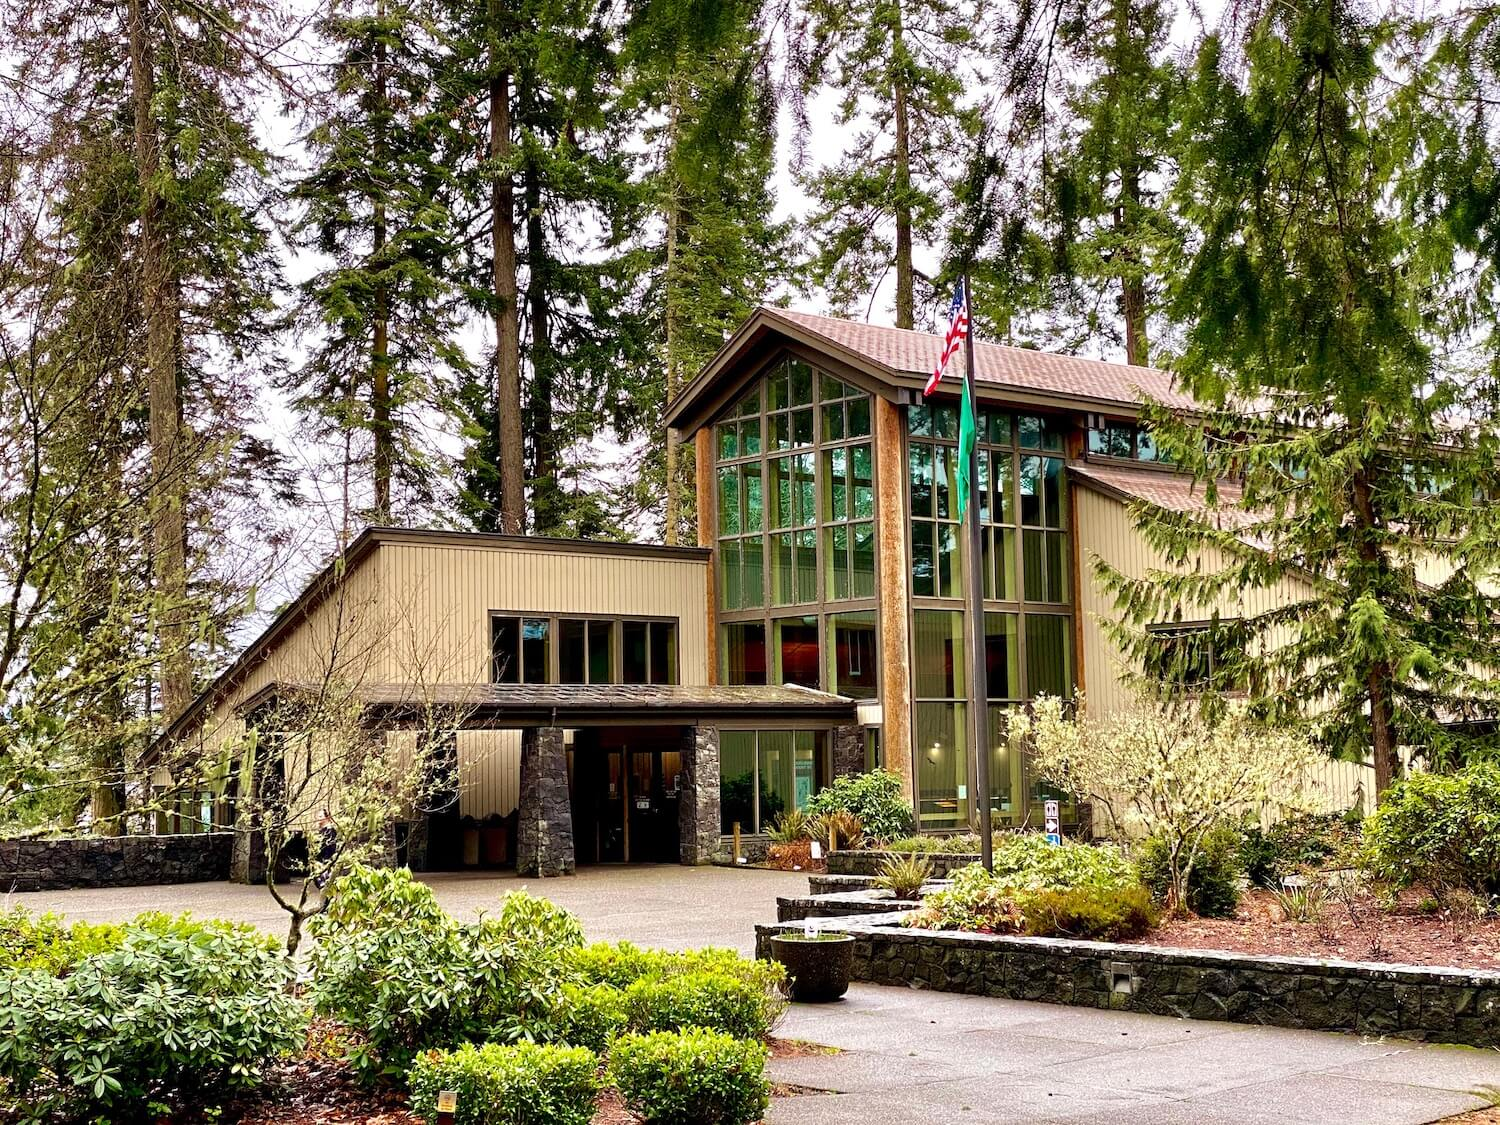 The exterior of Mt. St. Helens Visitor Center is a mixture of wide glass windows, stone pillars and wood siding, all in brown hues.  The building is surrounded by tall douglas fir trees.